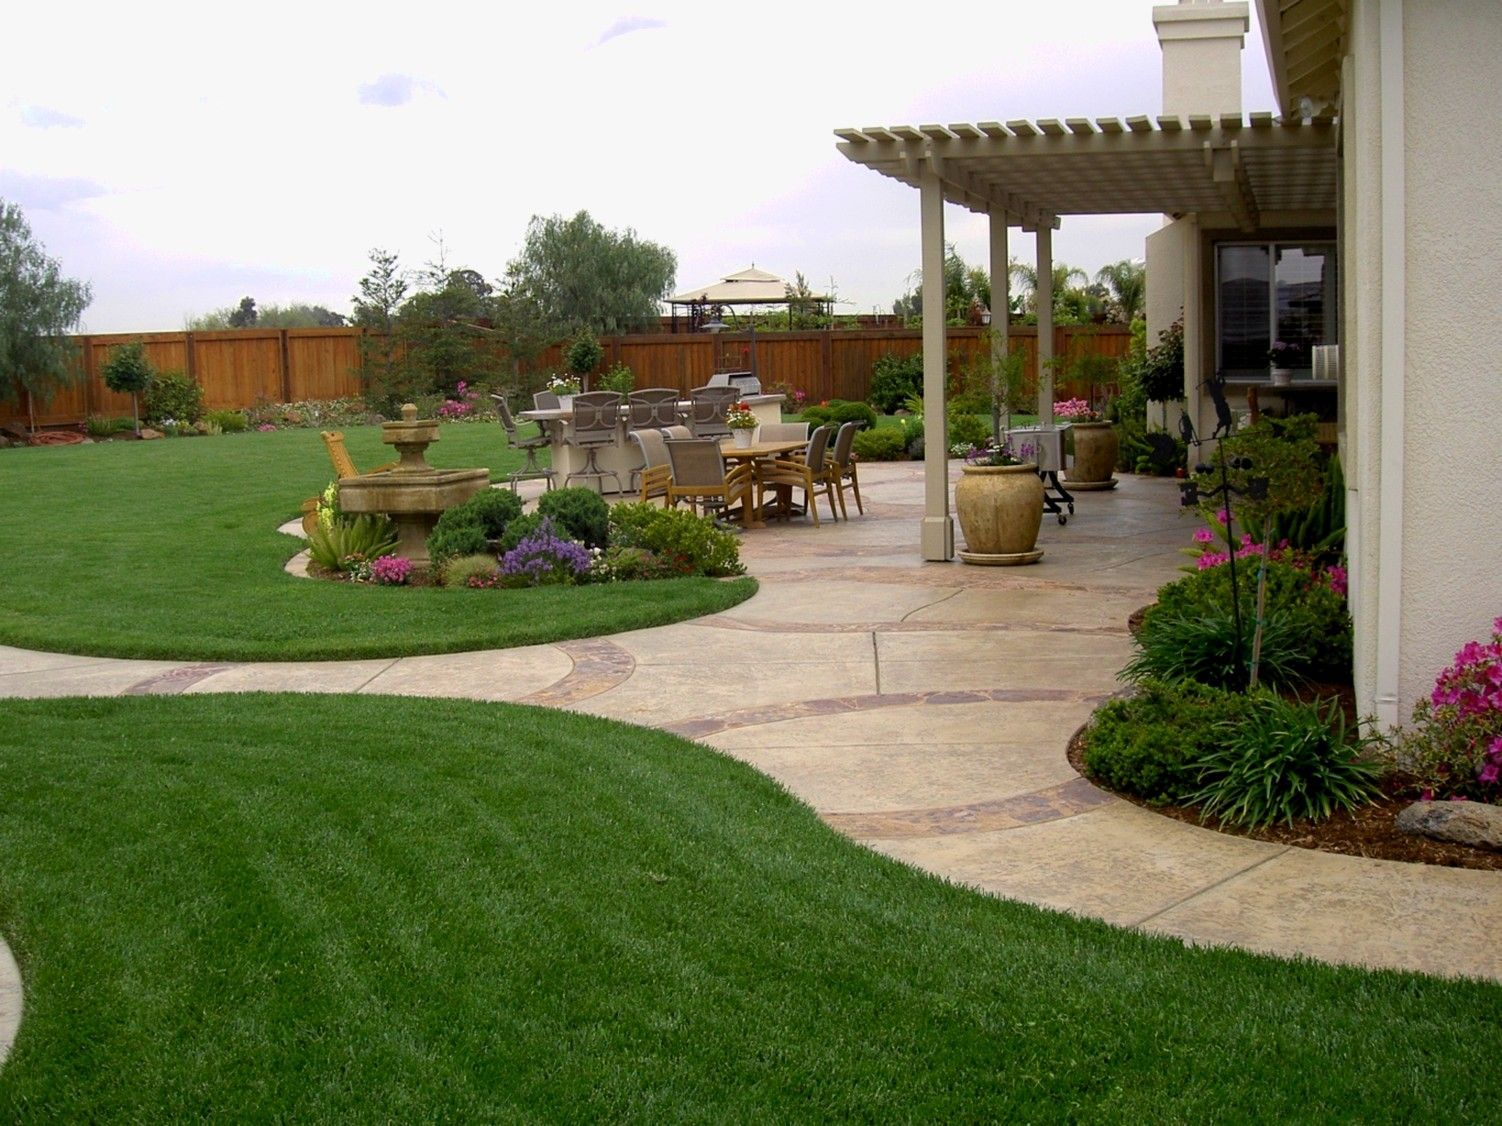 26 Awesome Concepts of How to Improve Backyard Landscape Designs